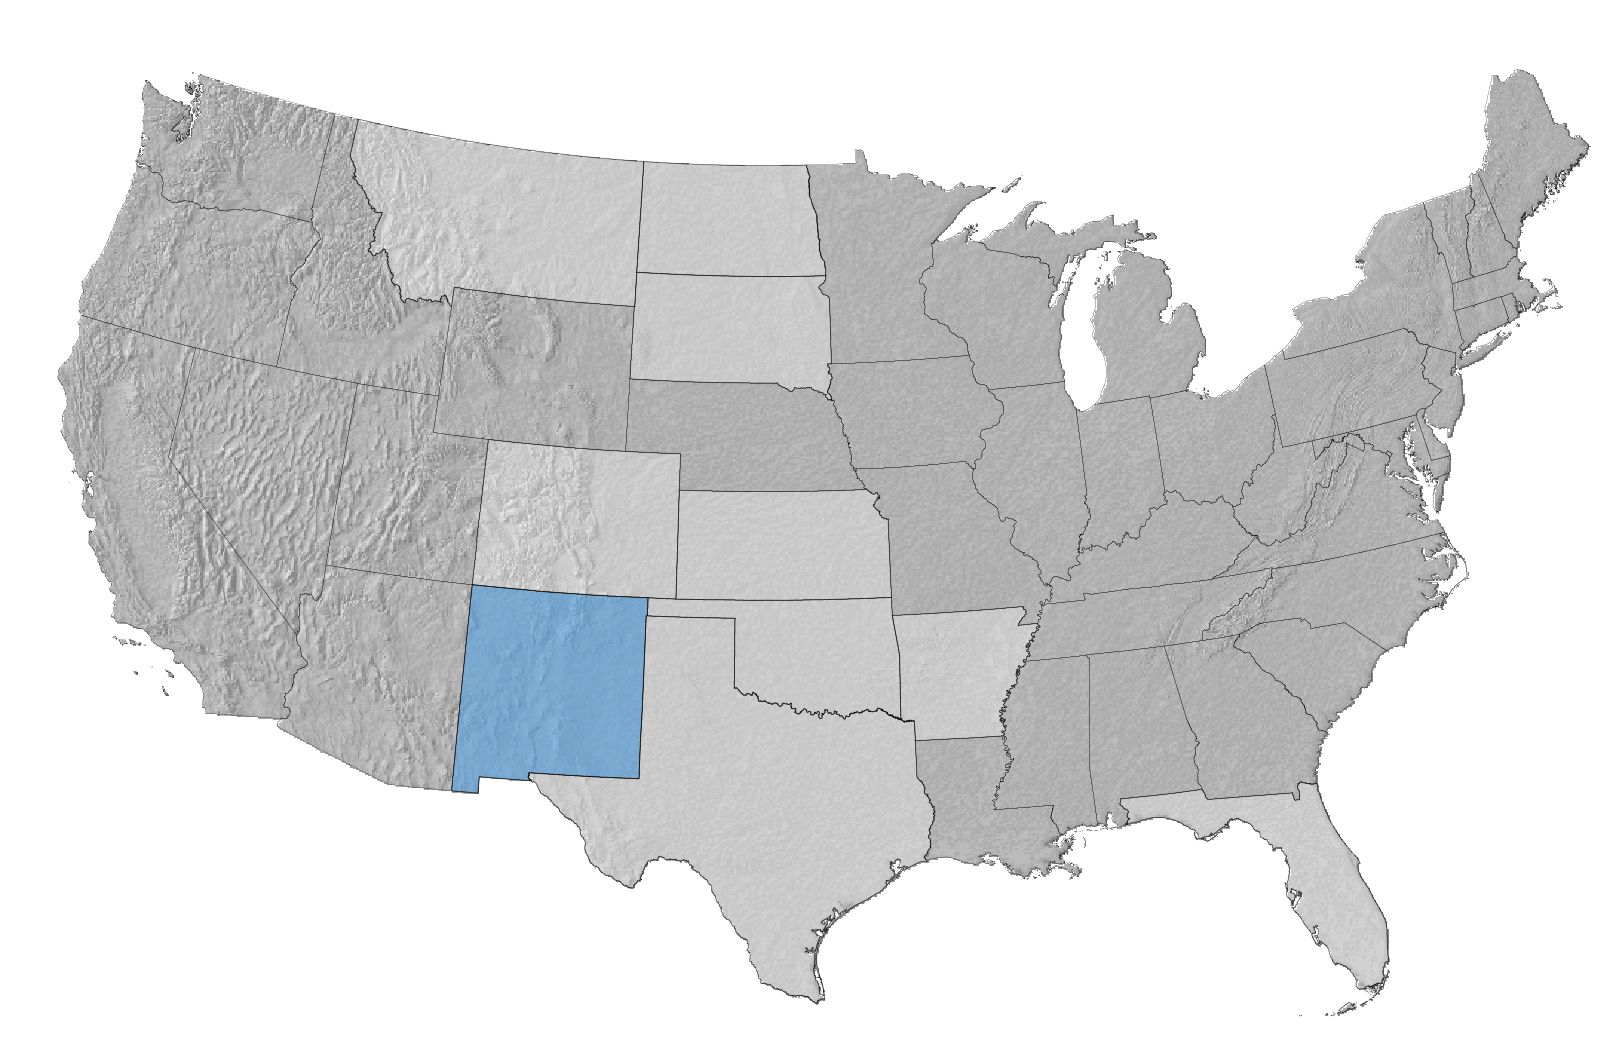 USA Map with New Mexico Highlighted